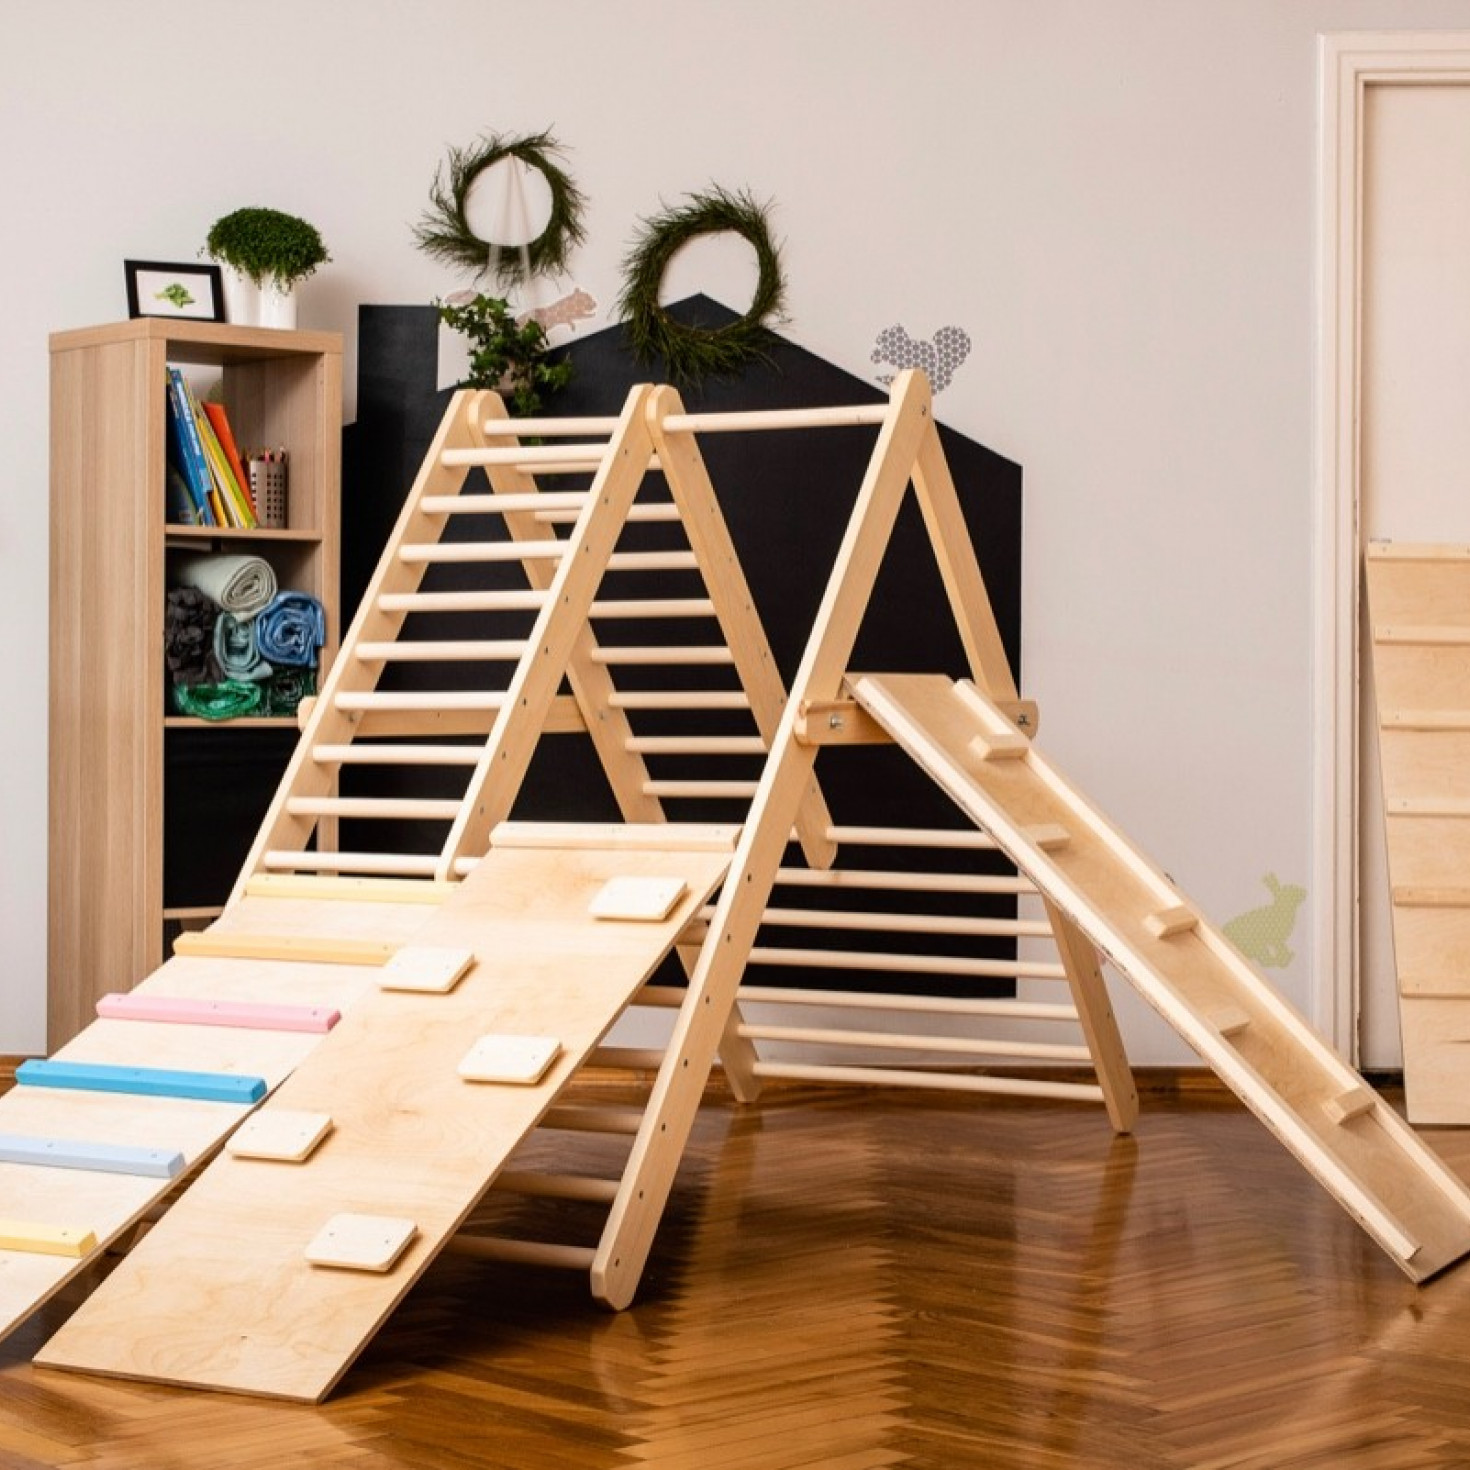 Climbing ladder for toddlers